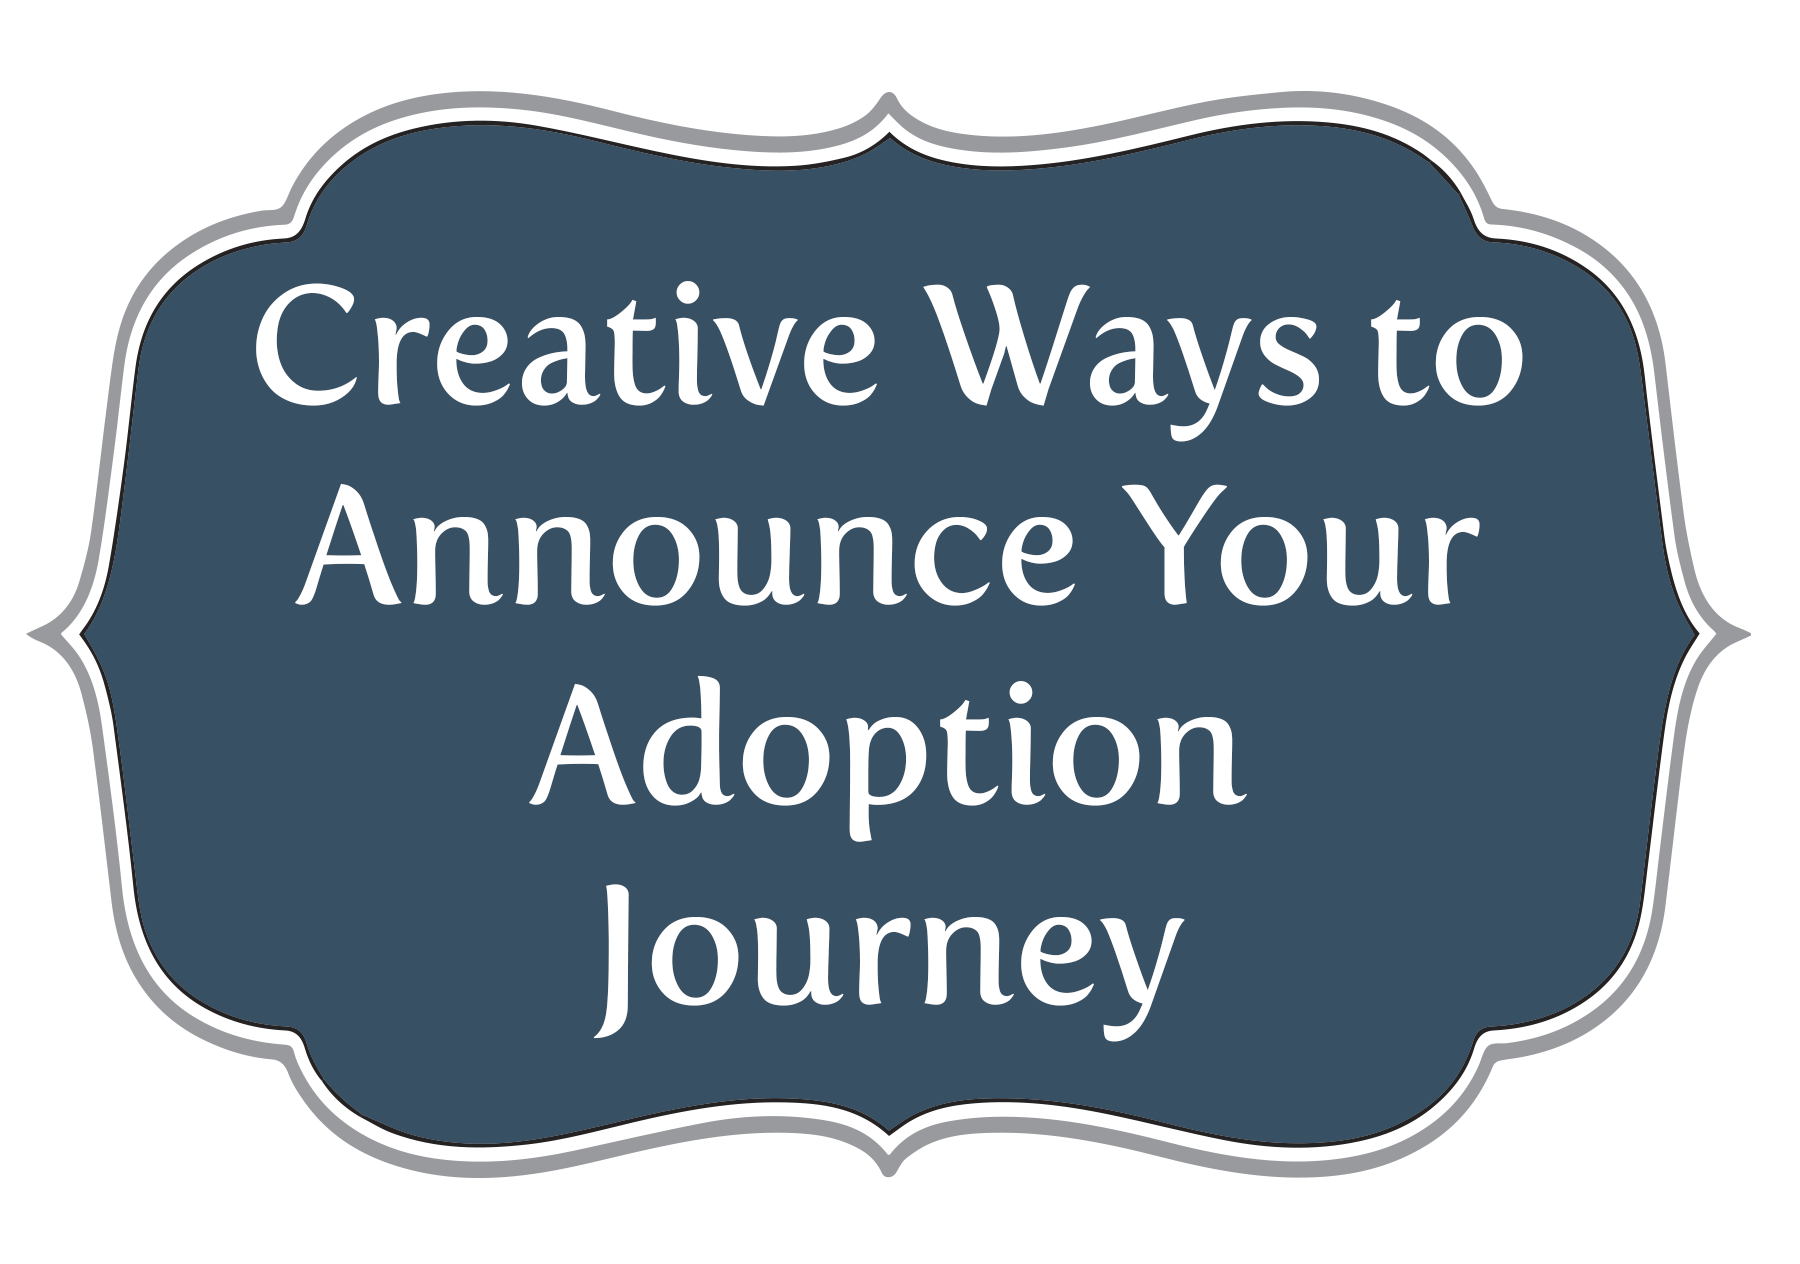 creative ways to announce your adoption journey american adoptions